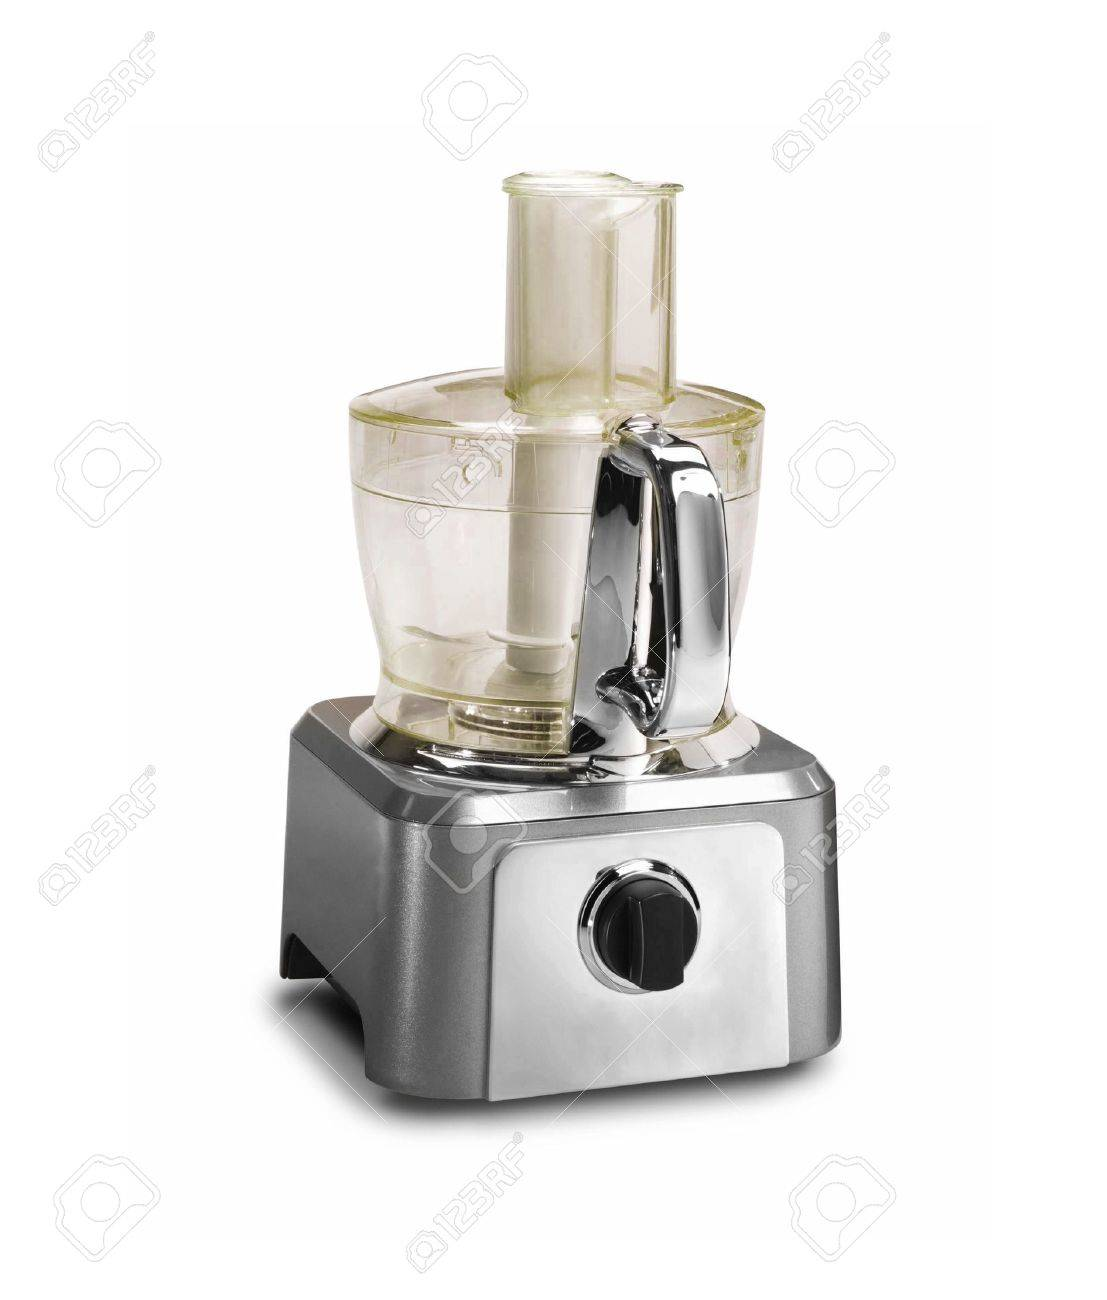 Food processor isolated on a white background Stock Photo - 10351414